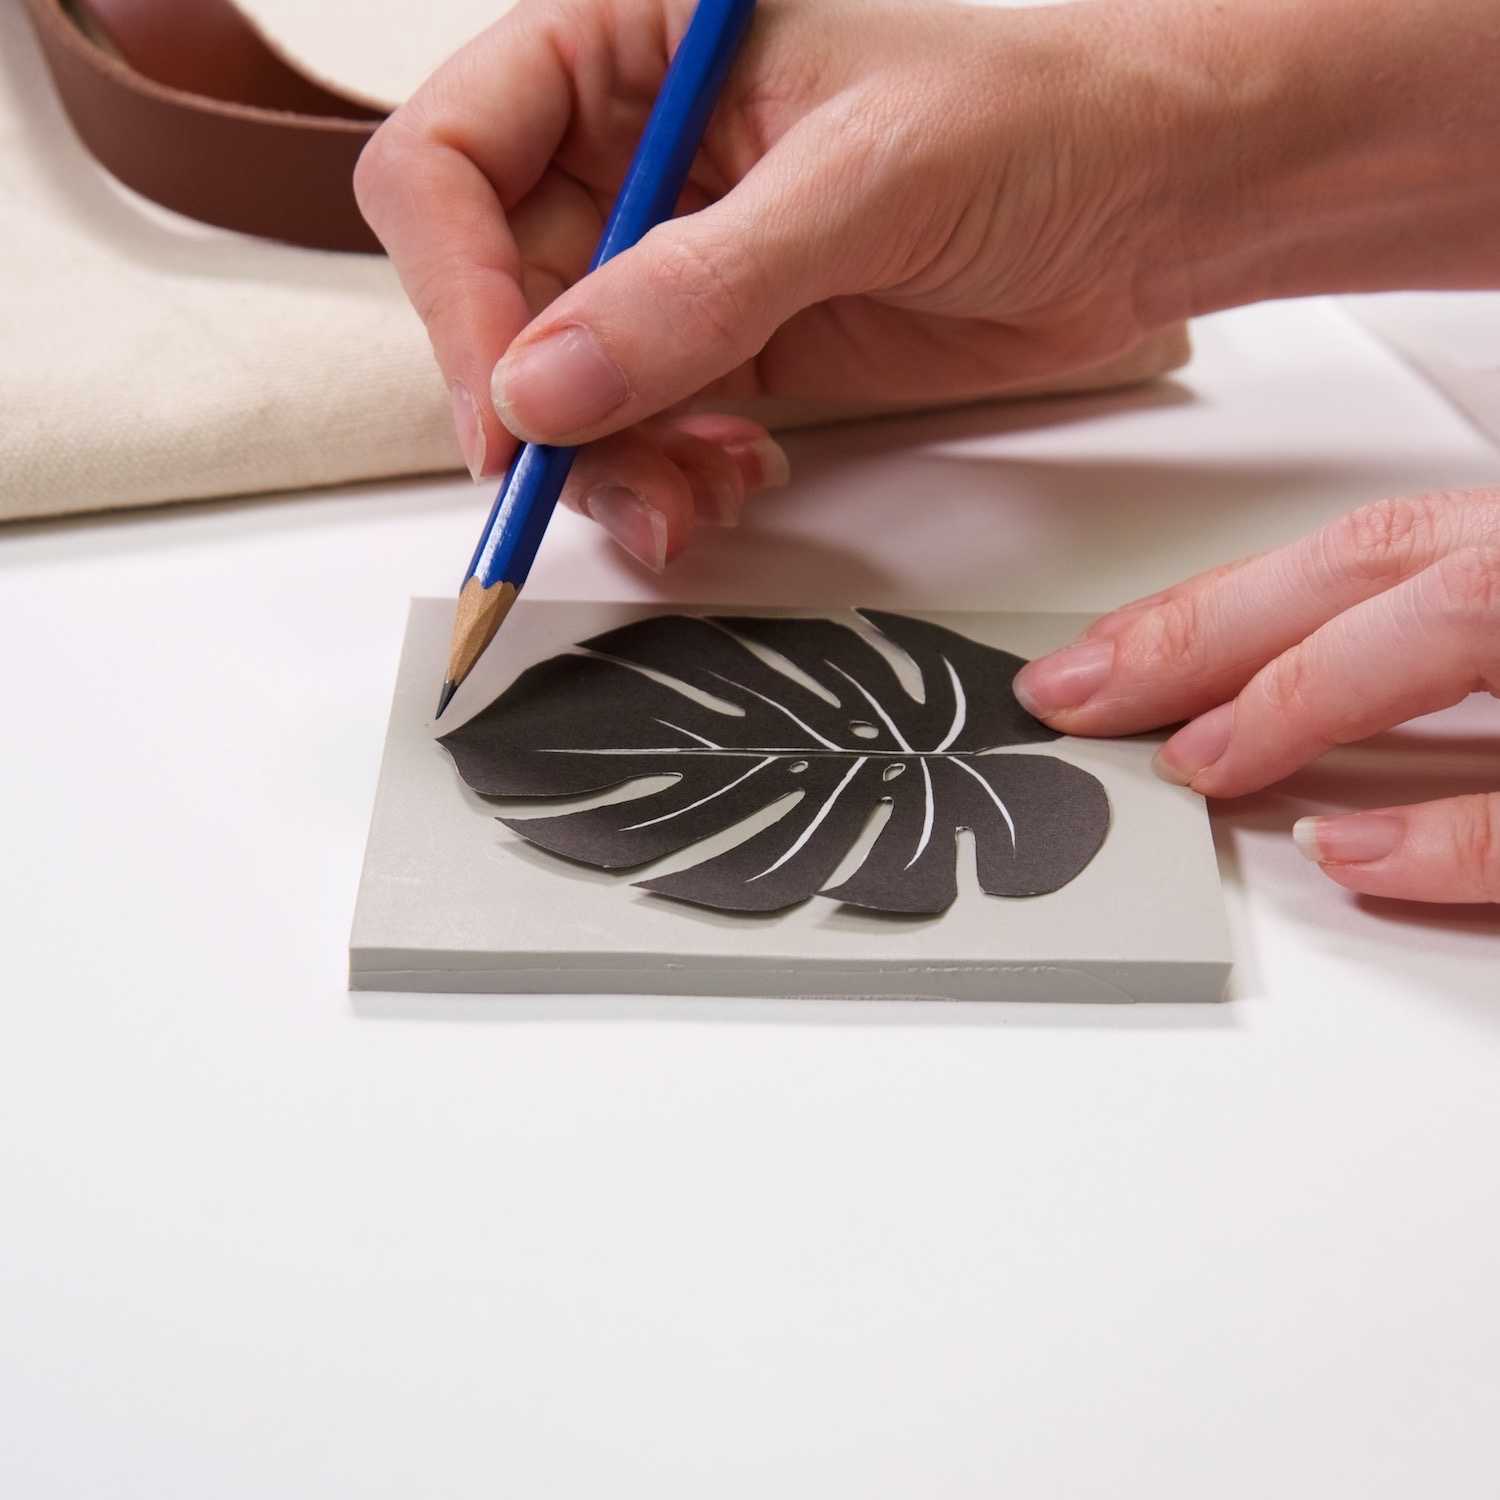 trace the outside of the template to make a linocut